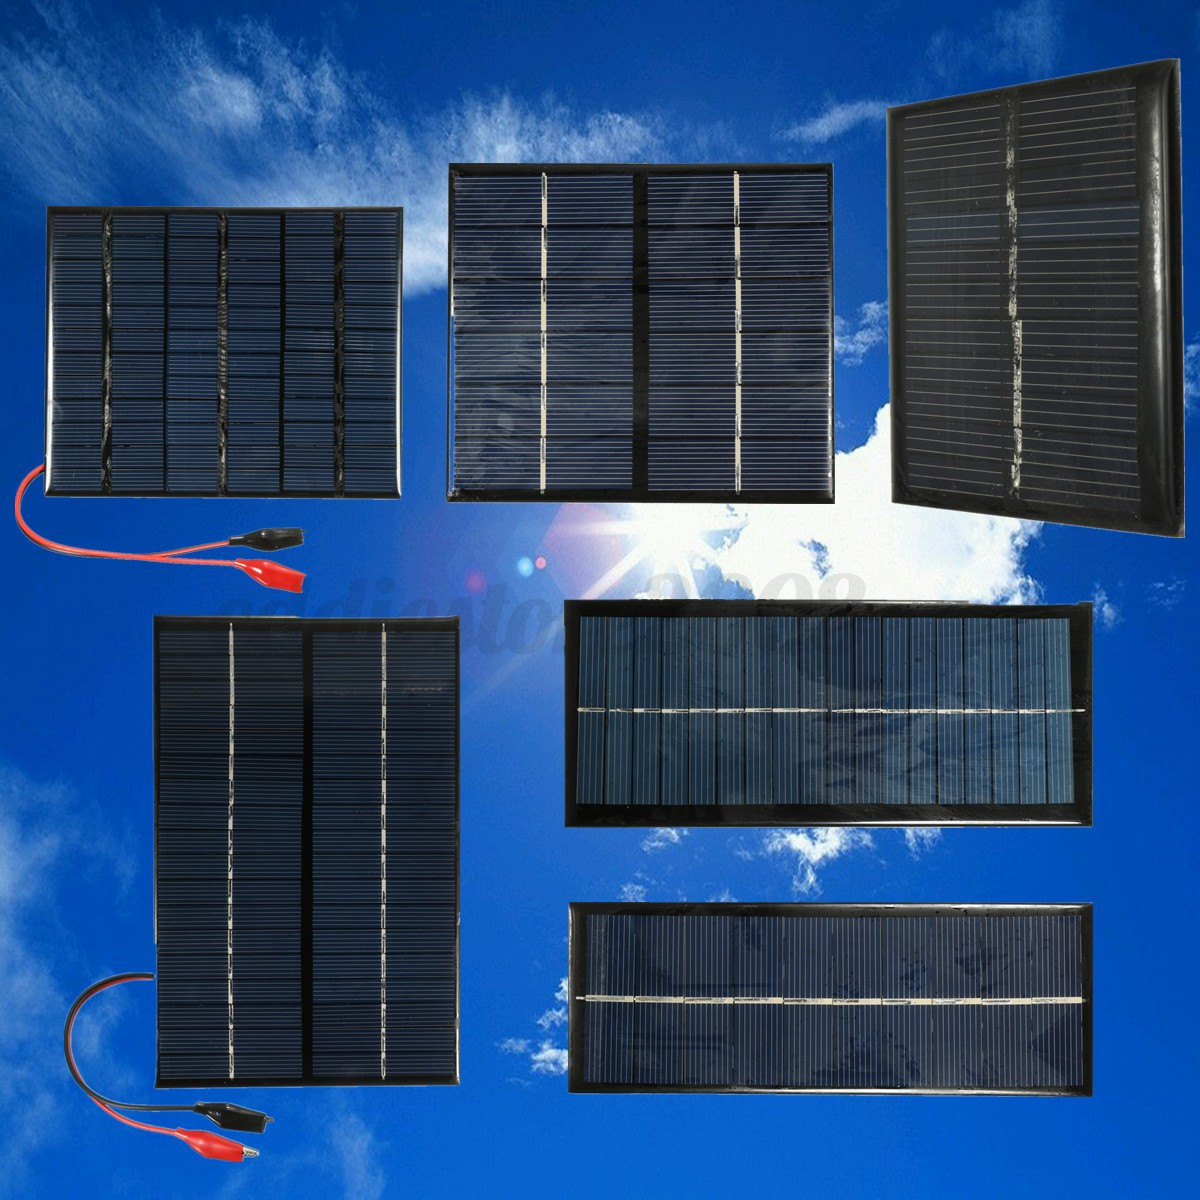 solar panel cap mobile charger China solar catalog of pv solar panel crimping tool with mc3 cable stripper mc4 spanner, high quality 2 rails solar junction box with diode provided by china.